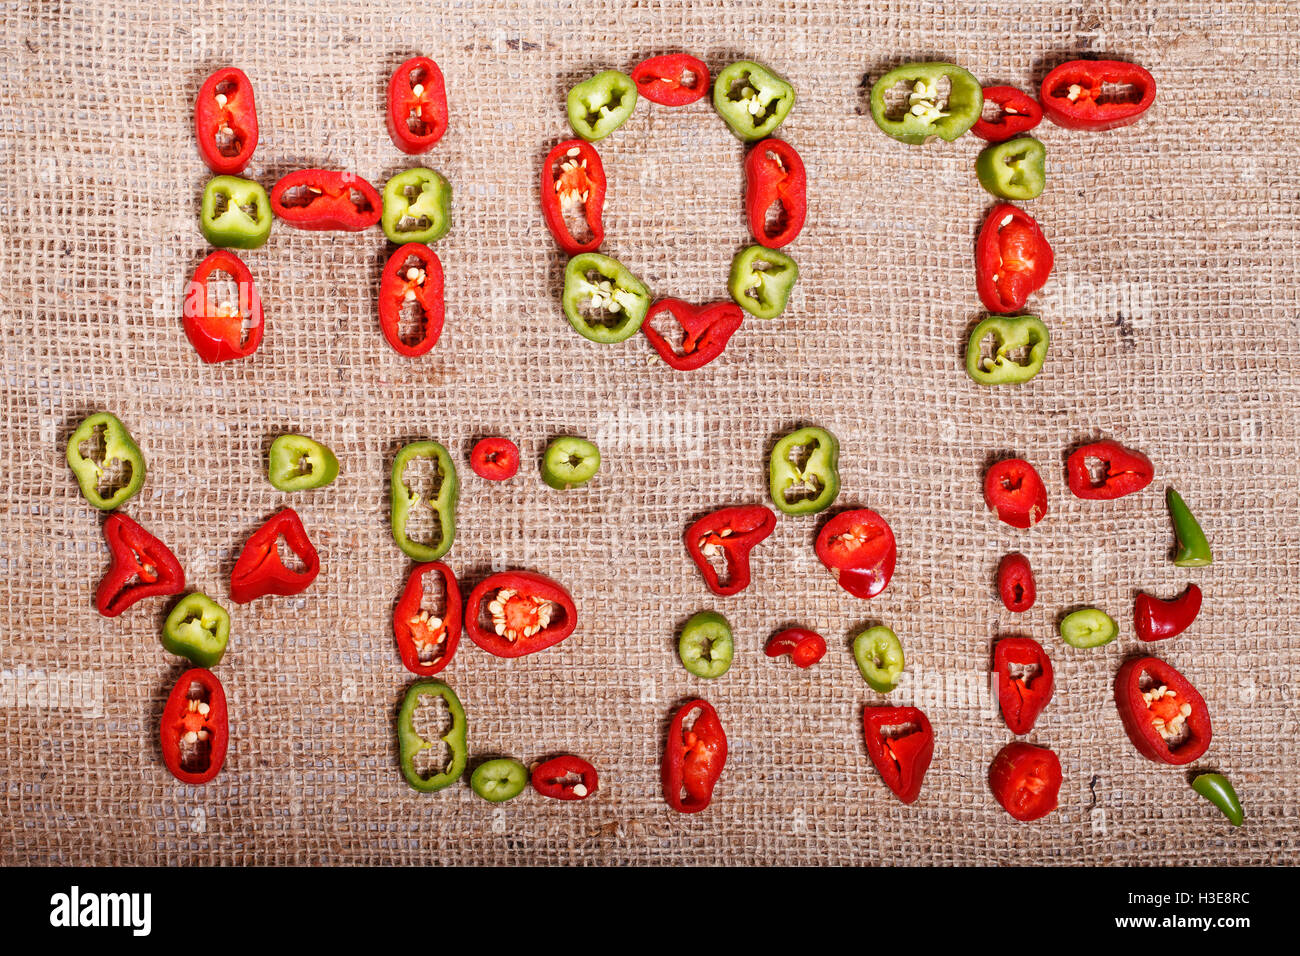 Hot year, events and travel in the new year, abstract background with hot peppers - Stock Image